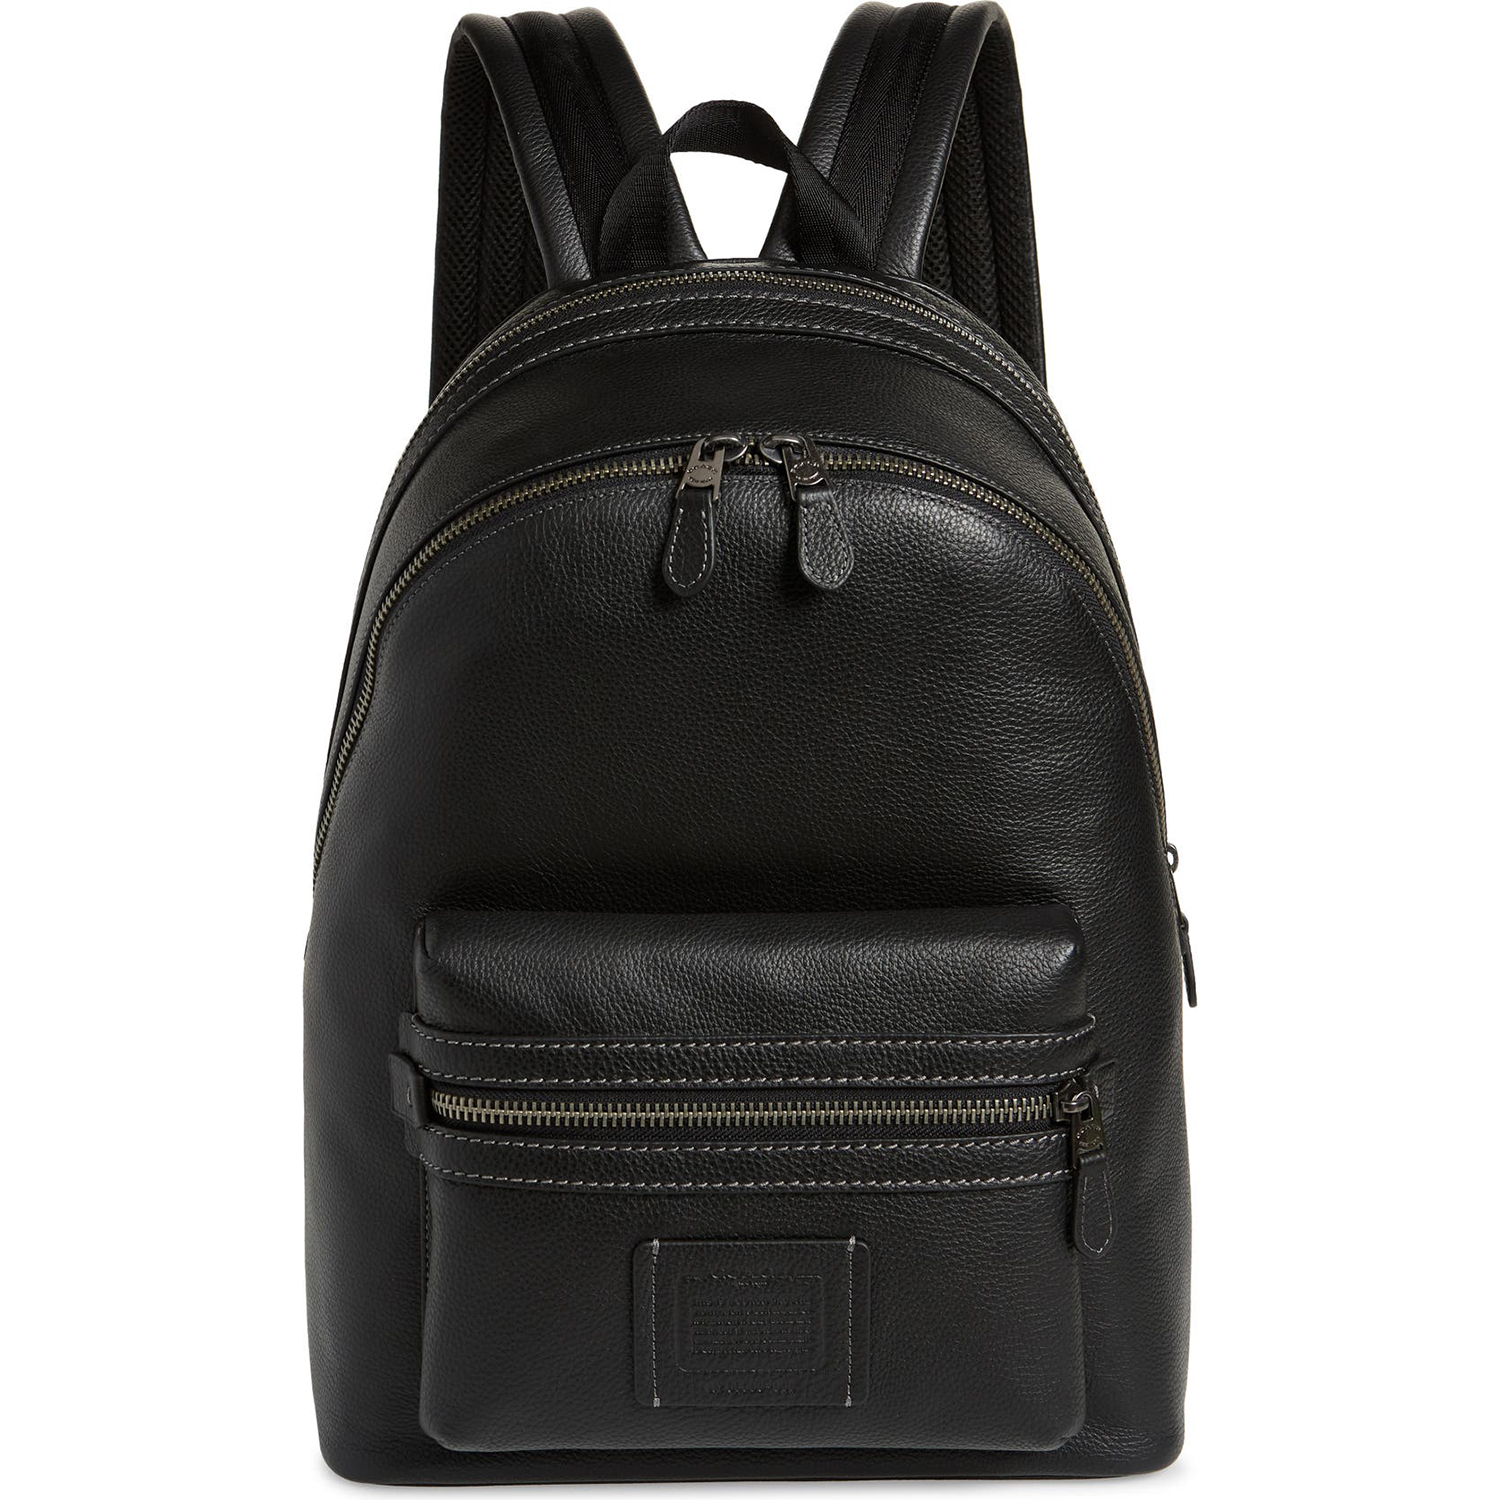 Nordstrom travel bags